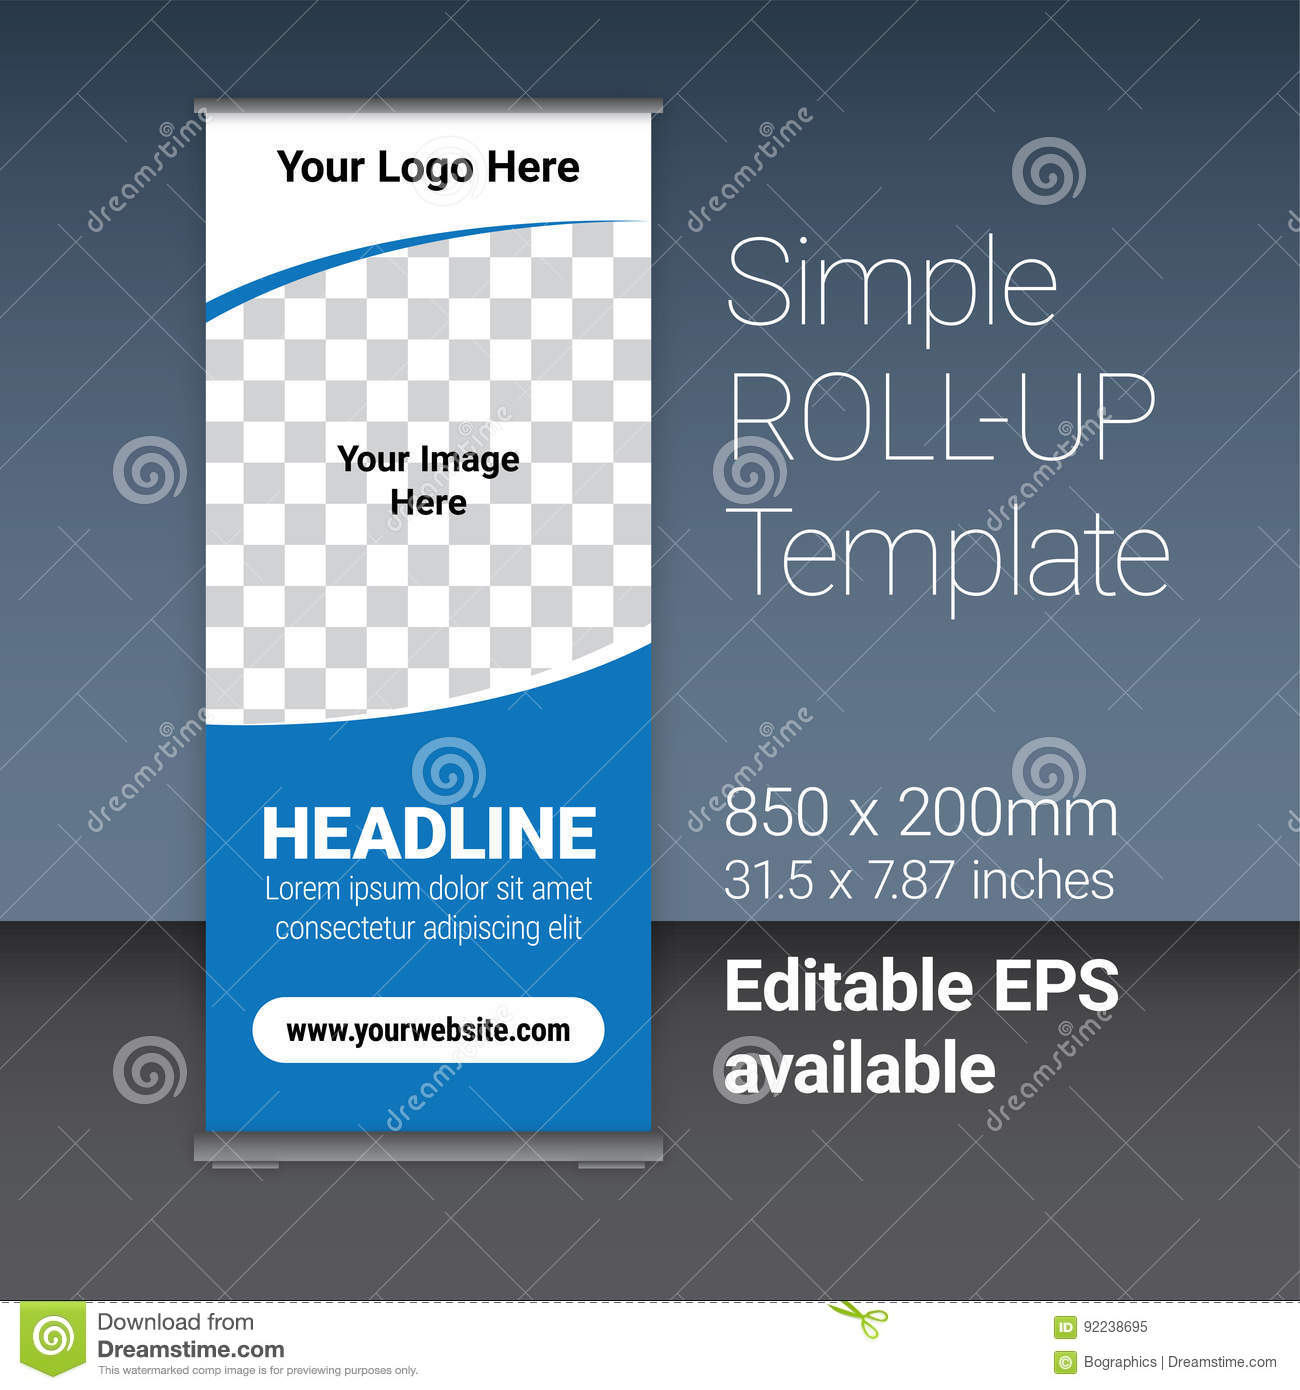 Simple Blue Roll-up Template Vector